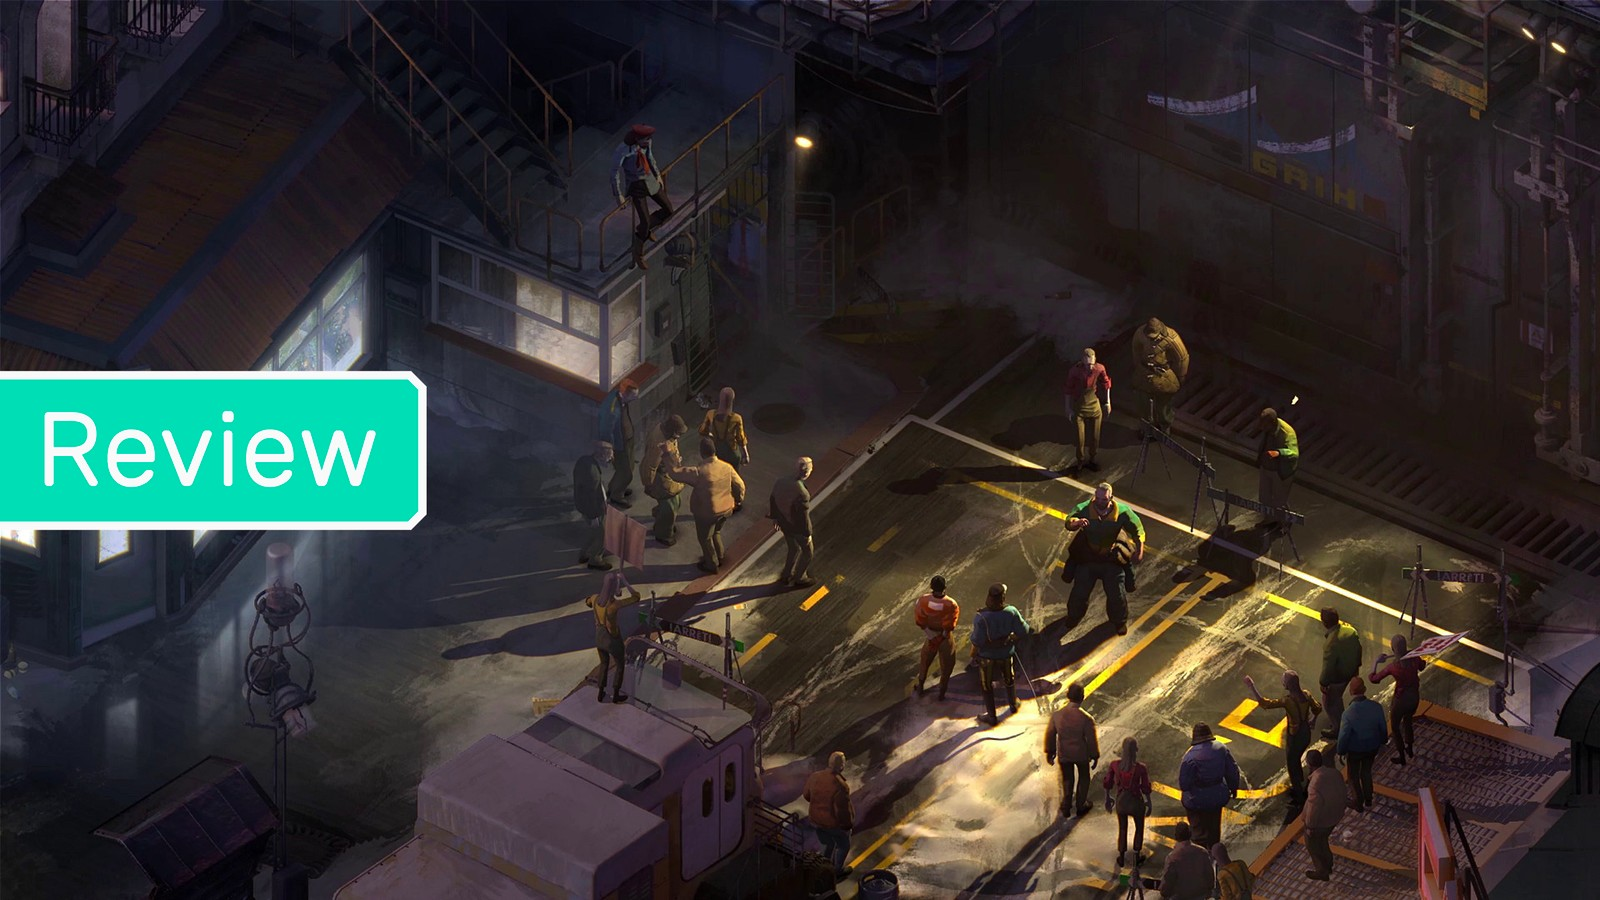 'Disco Elysium' Is a Landmark RPG About the Politics of Our Broken World